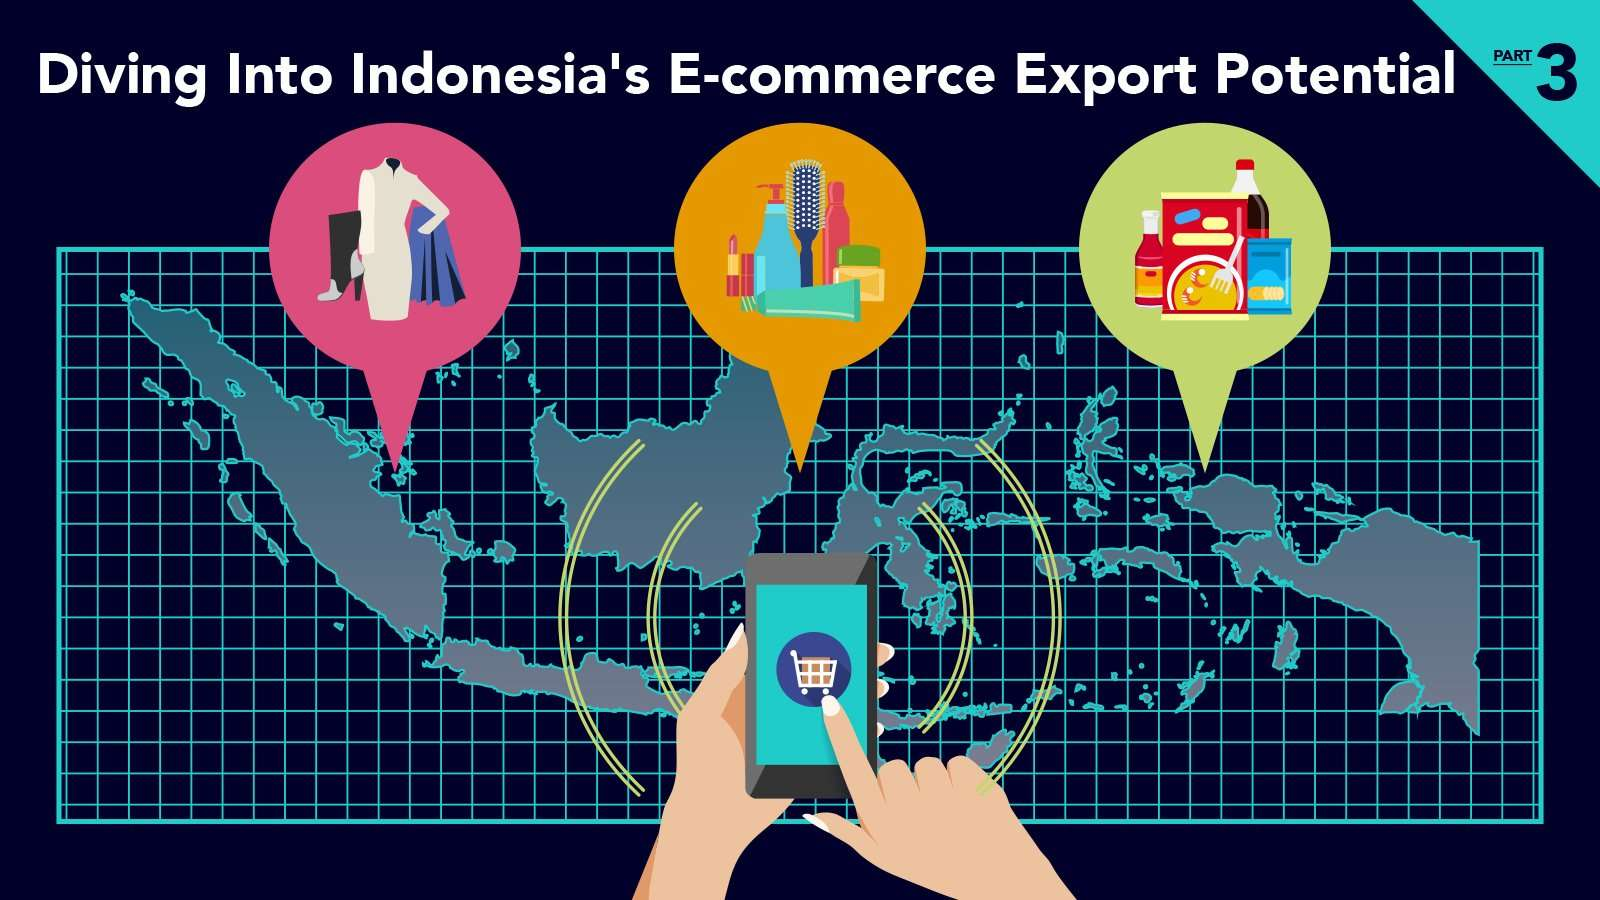 Diving into Indonesia's E-commerce Export Potential Part 3 - Indonesia's Government Initiatives to Support E-commerce exports